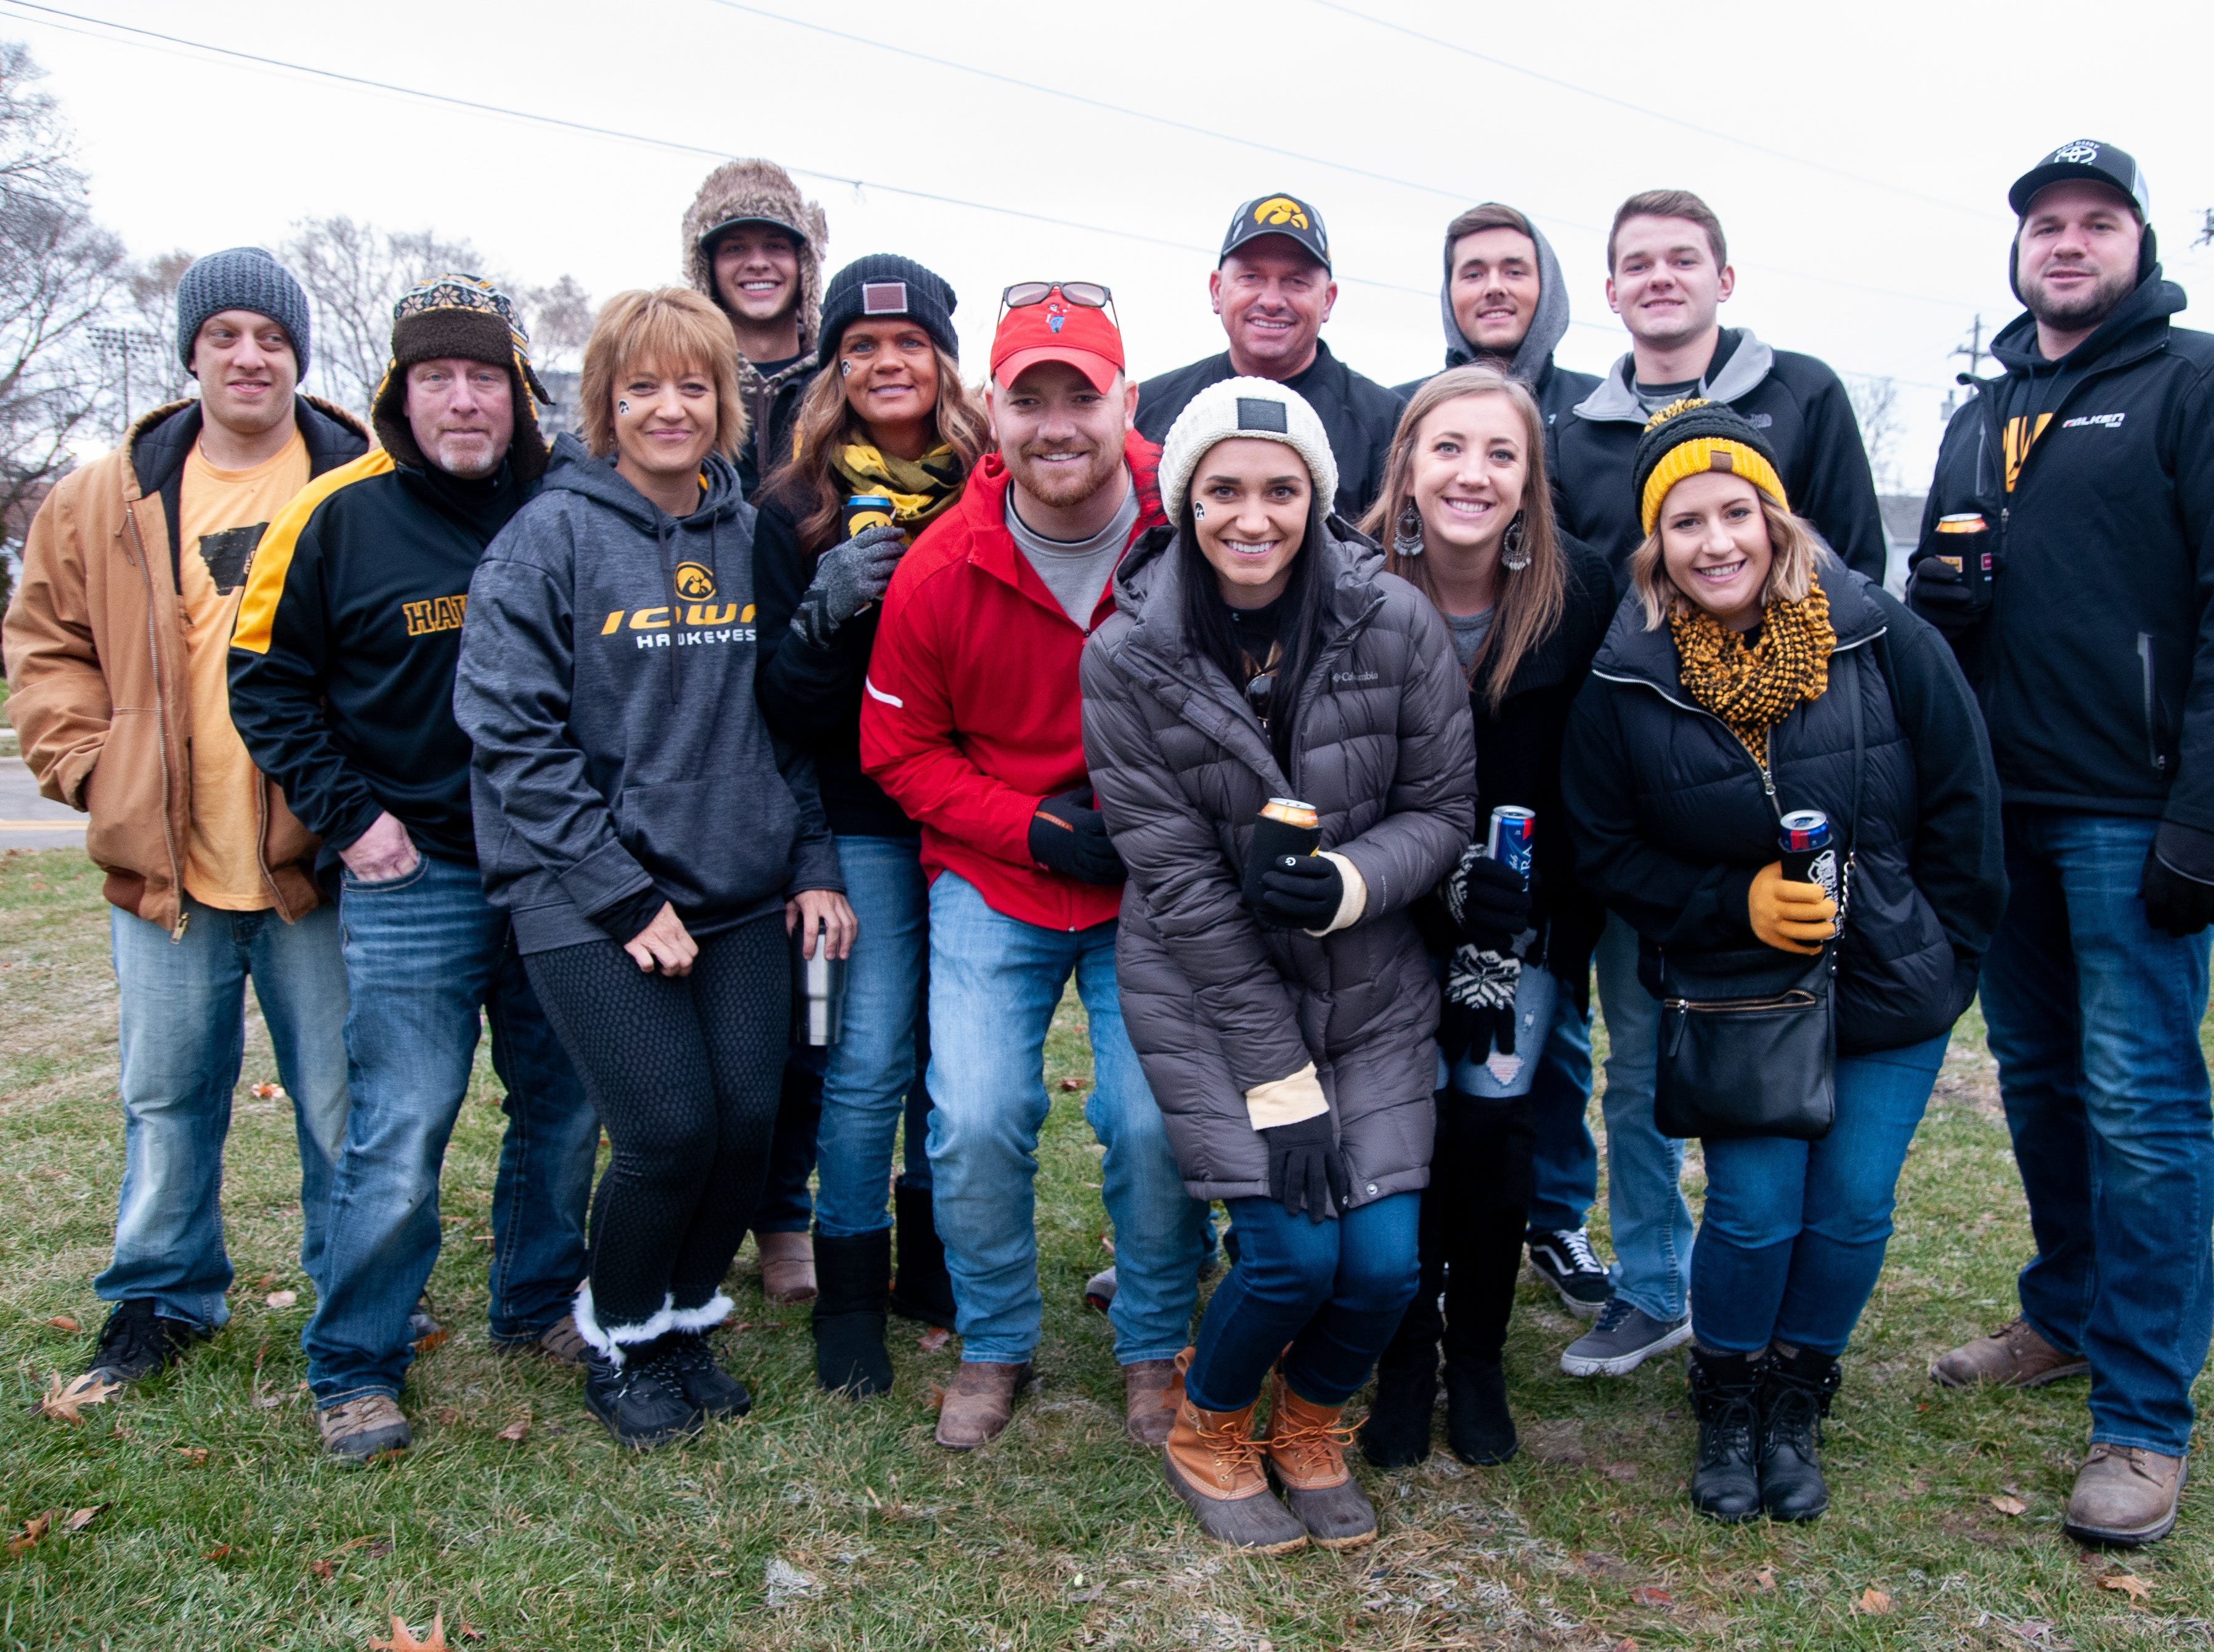 The Elgins Tailgate, of Lincoln, Omaha and Earlville, Friday, Nov. 23, 2018, while tailgating before the Iowa game against Nebraska in Iowa City.